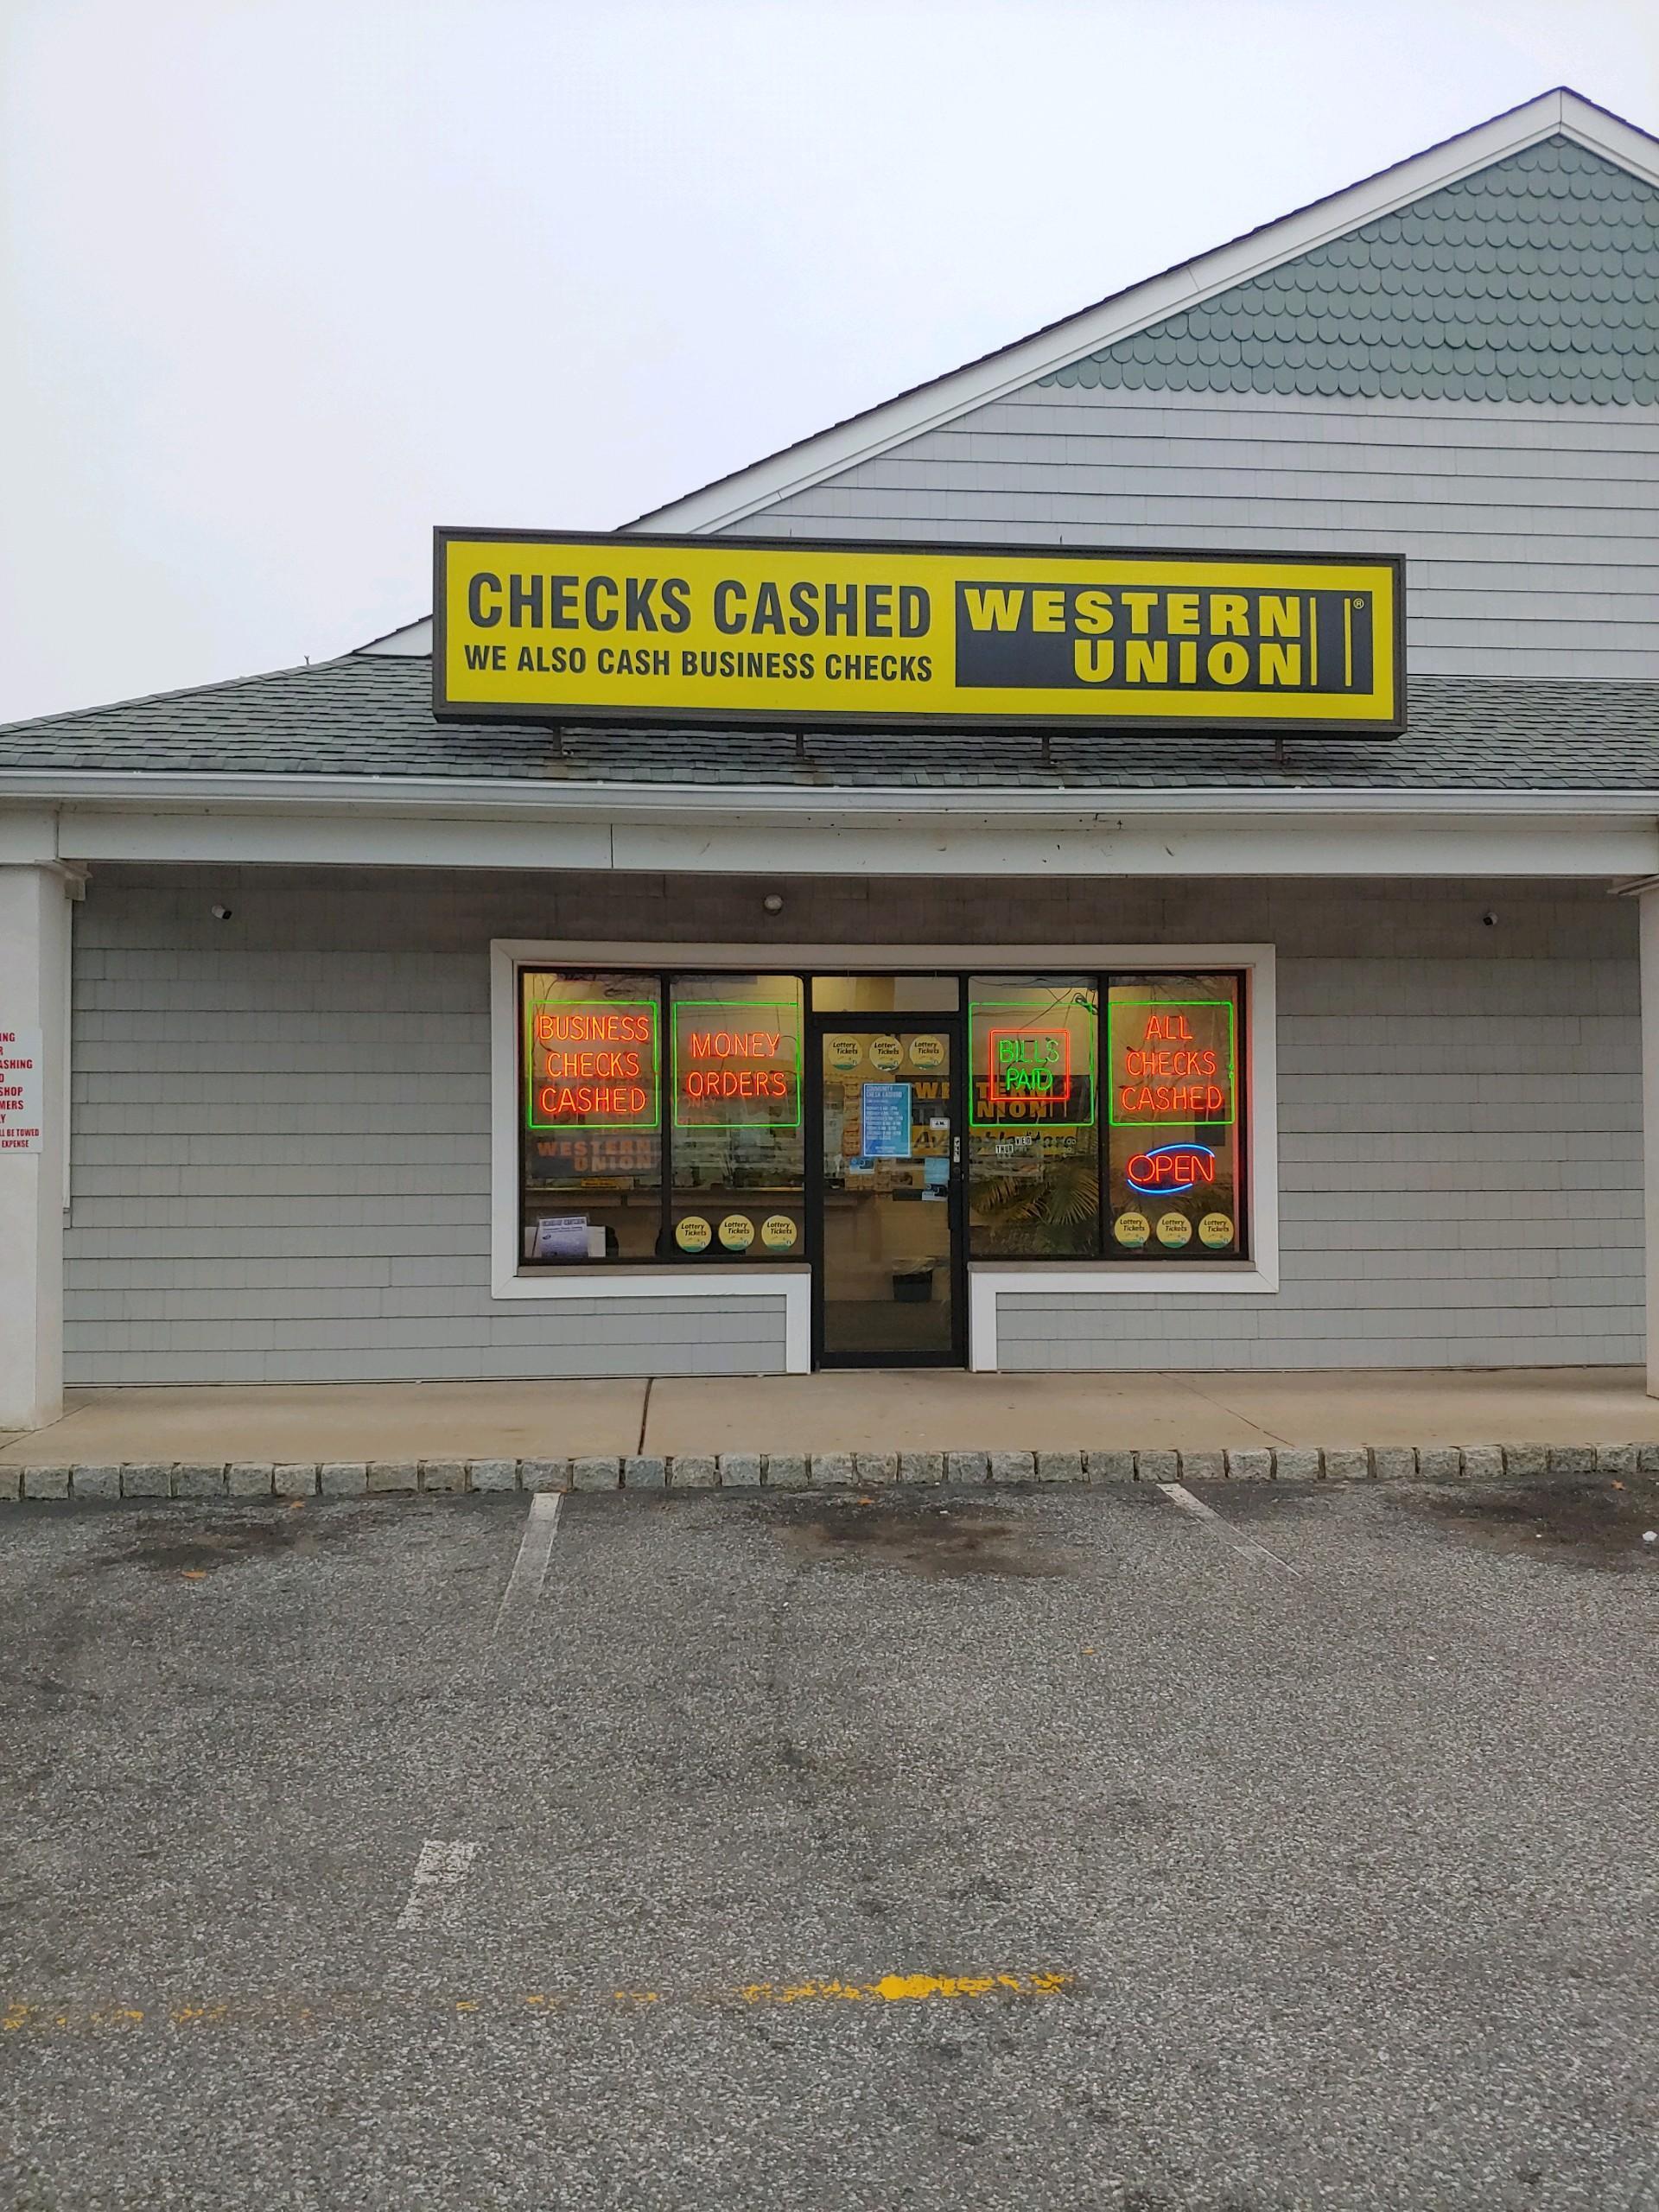 Community Check Cashing in Toms River, NJ